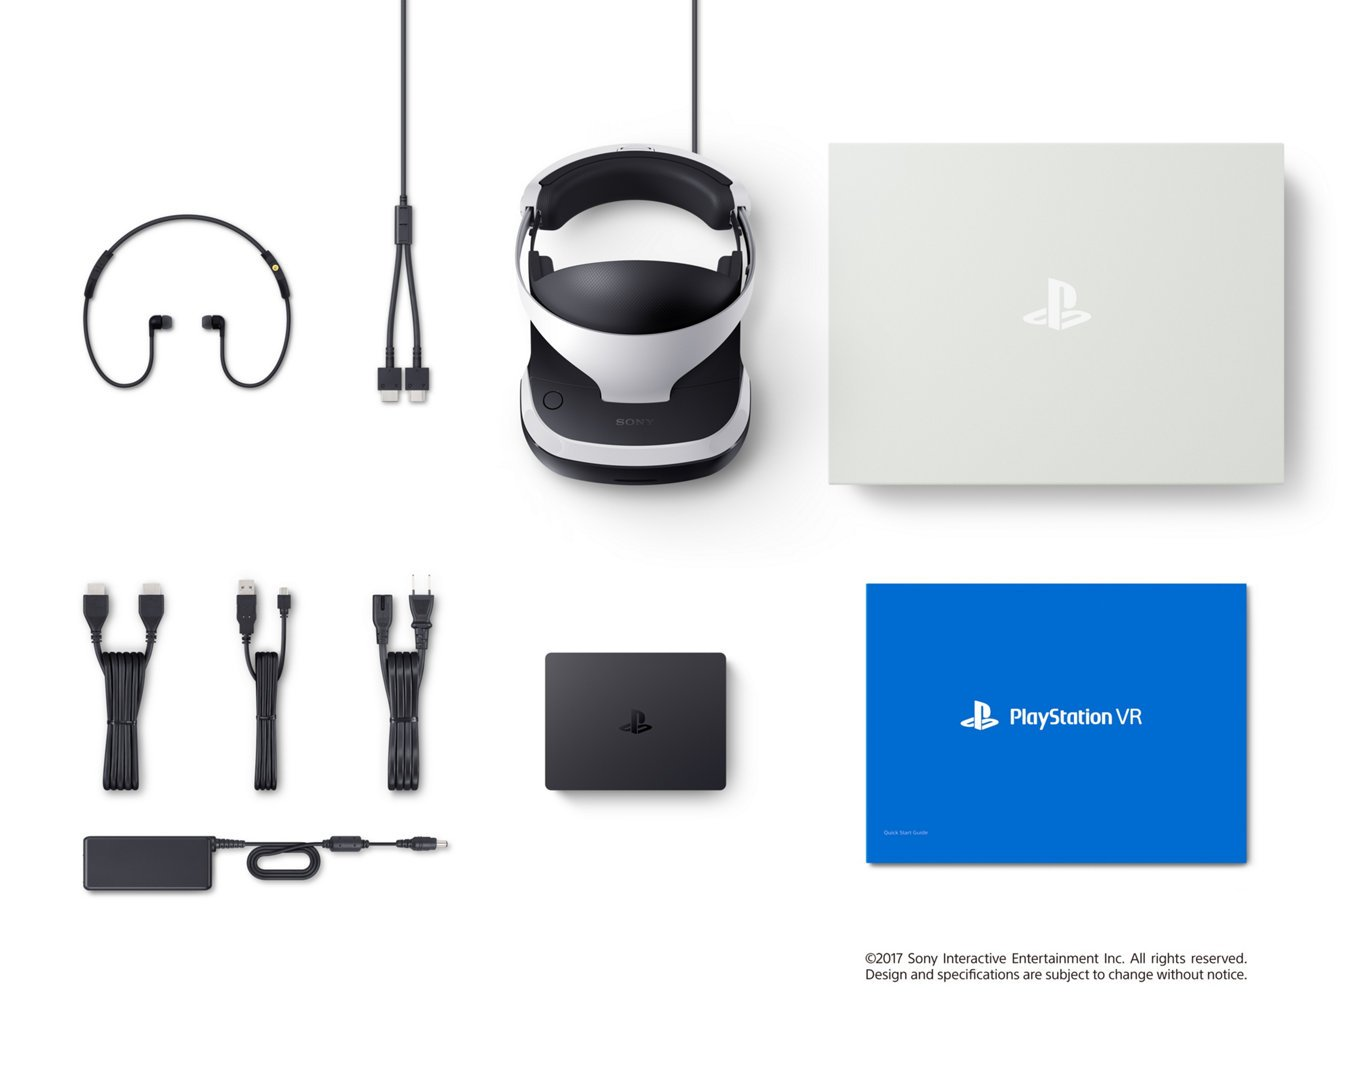 The best Black Friday 2018 PSVR deals © Sony Interactive Entertainment